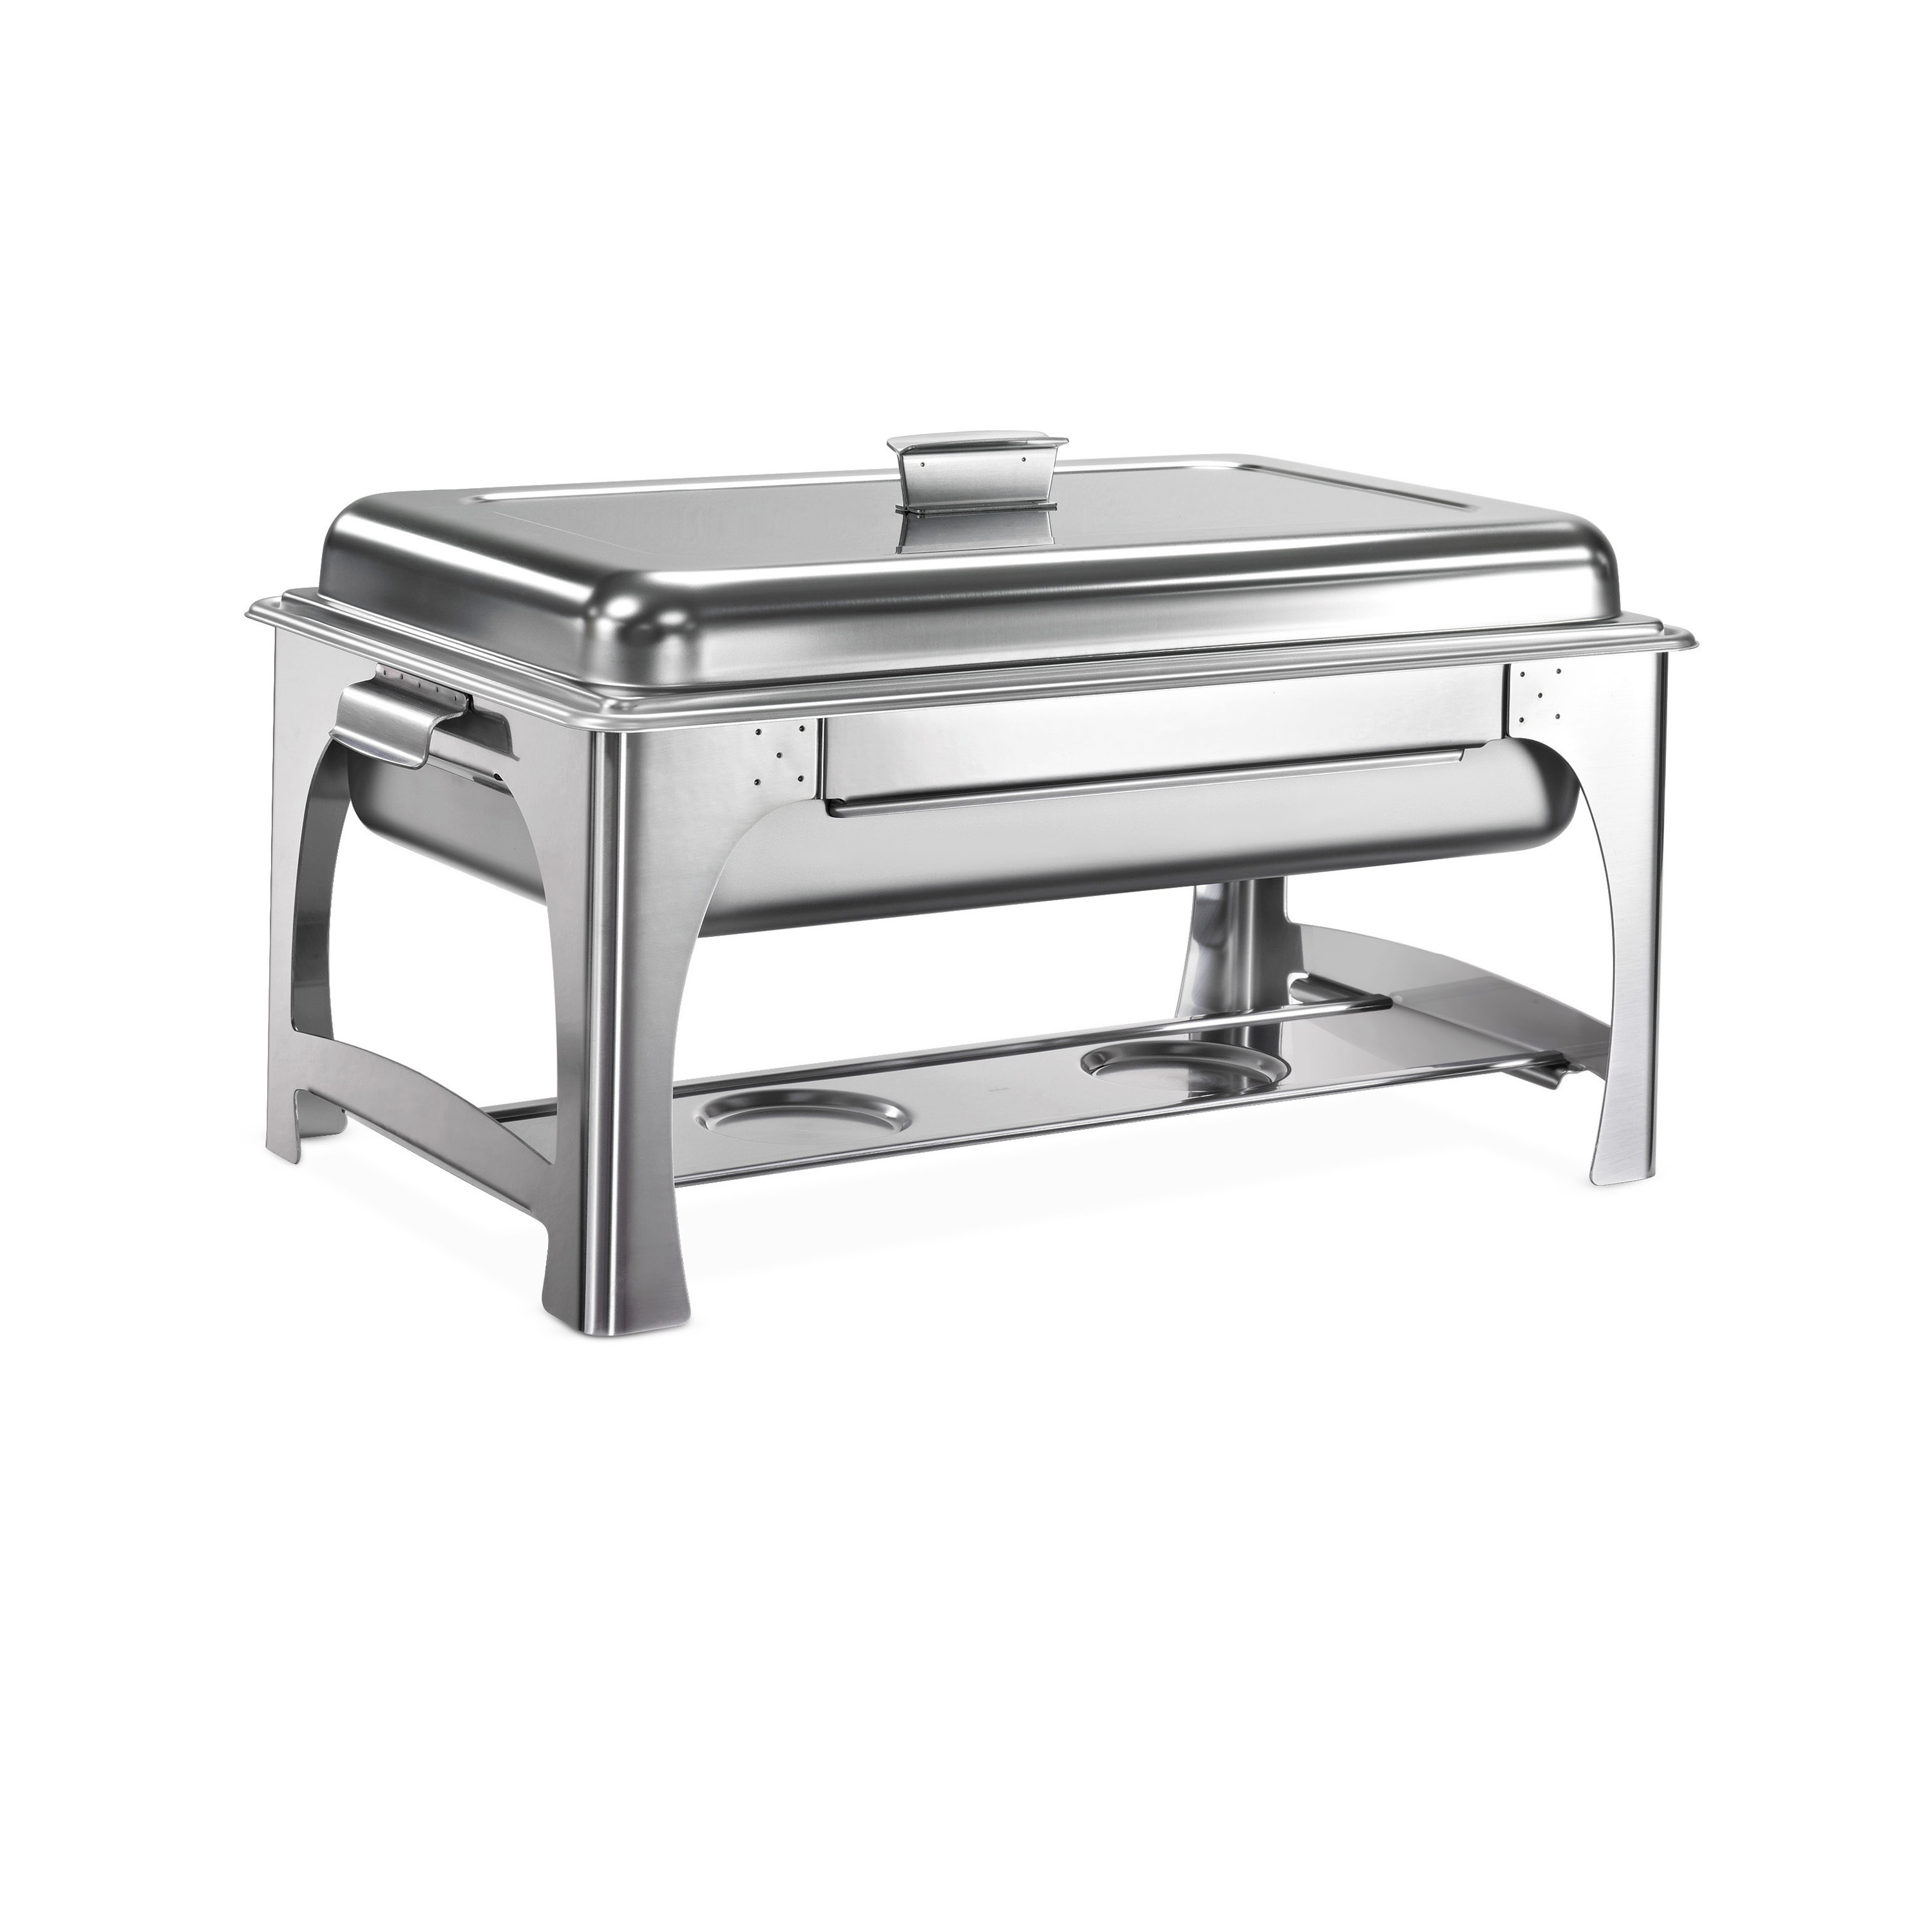 Tramontina Pro-Line 9 Qt. Stainless Steel Rectangle Chafing Dish